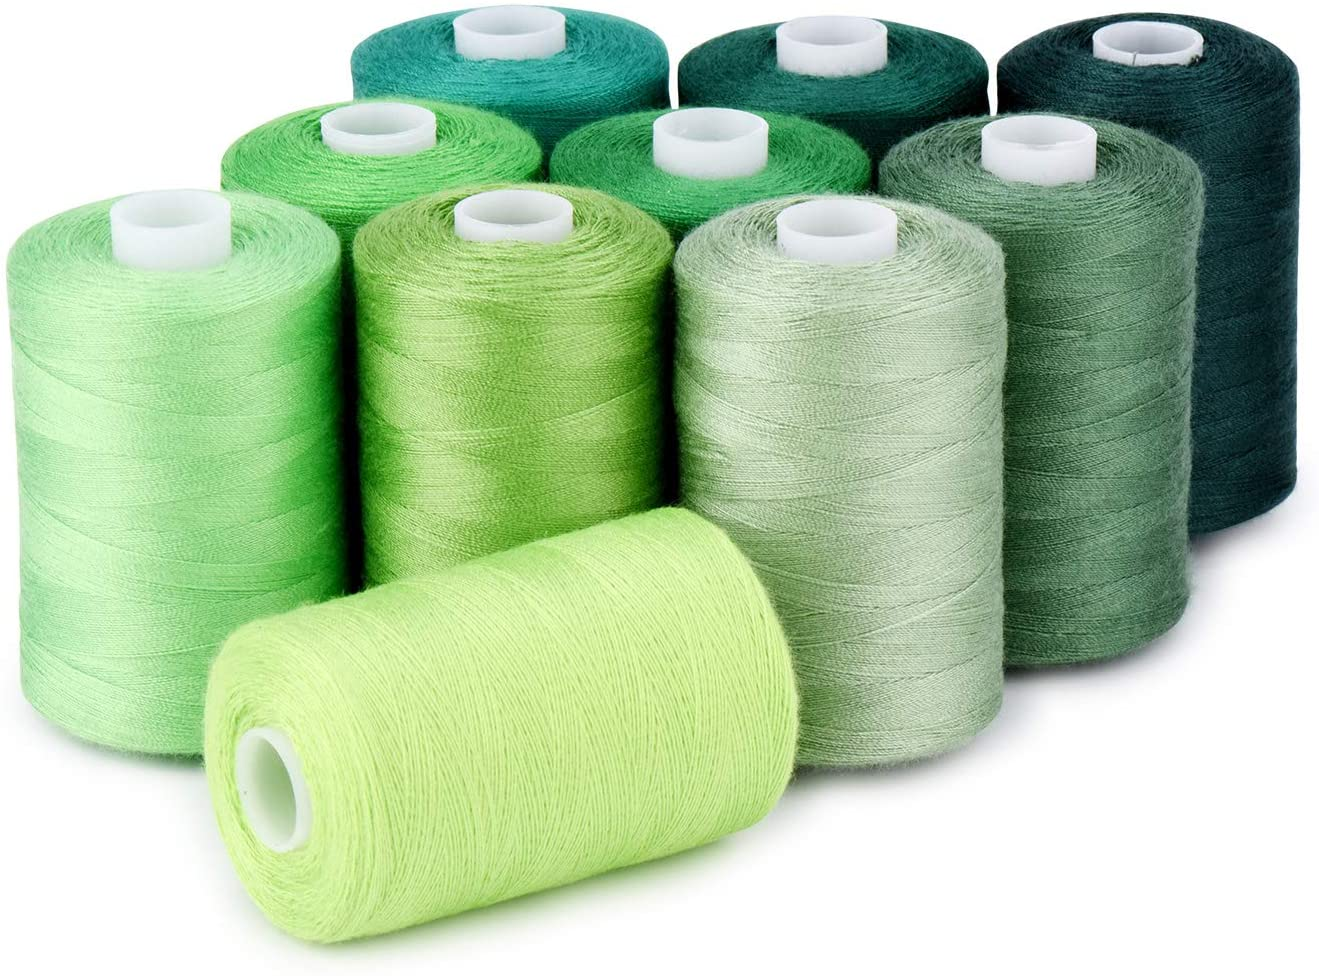 Sewing Thread 12 Colors Set 40S/2 for Sewing Machine,Quilting,Hand Sewing (10 Green Colors)